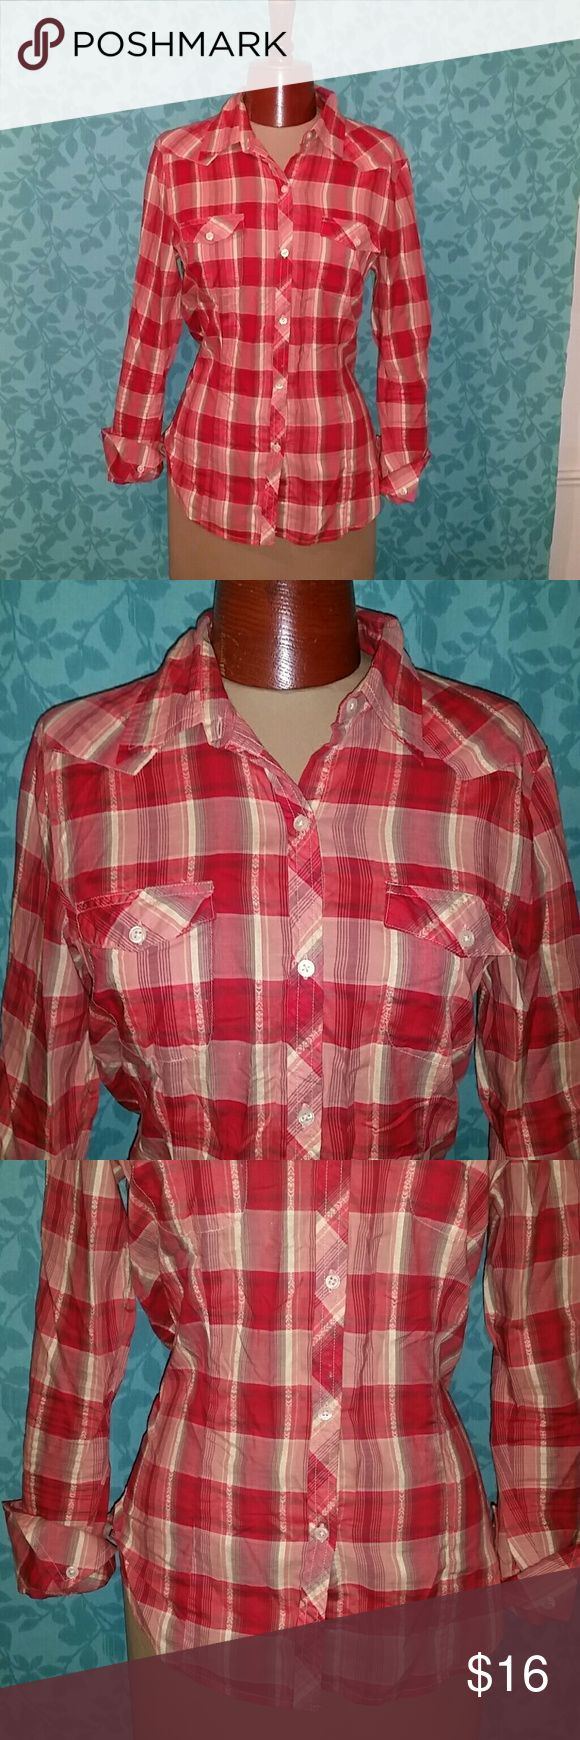 """American Eagle Button Up Shear Cowgirl Shirt Plaid This is for a beautiful red and yellow shear button up shirt by American Eagle. The size is medium and it is made of 100% cotton. Ivory Pearlized buttons with buttons at the cuffs. Front chest pockets. It is in great pre owned condition with no stains, holes, or odors. Smoke free home. Measures: across armpits: 19"""", across shoulders: 15.75"""", shoulder to bottom of sleeve: 24"""", length: 24.5"""" American Eagle Outfitters Tops Button Down Shirts"""